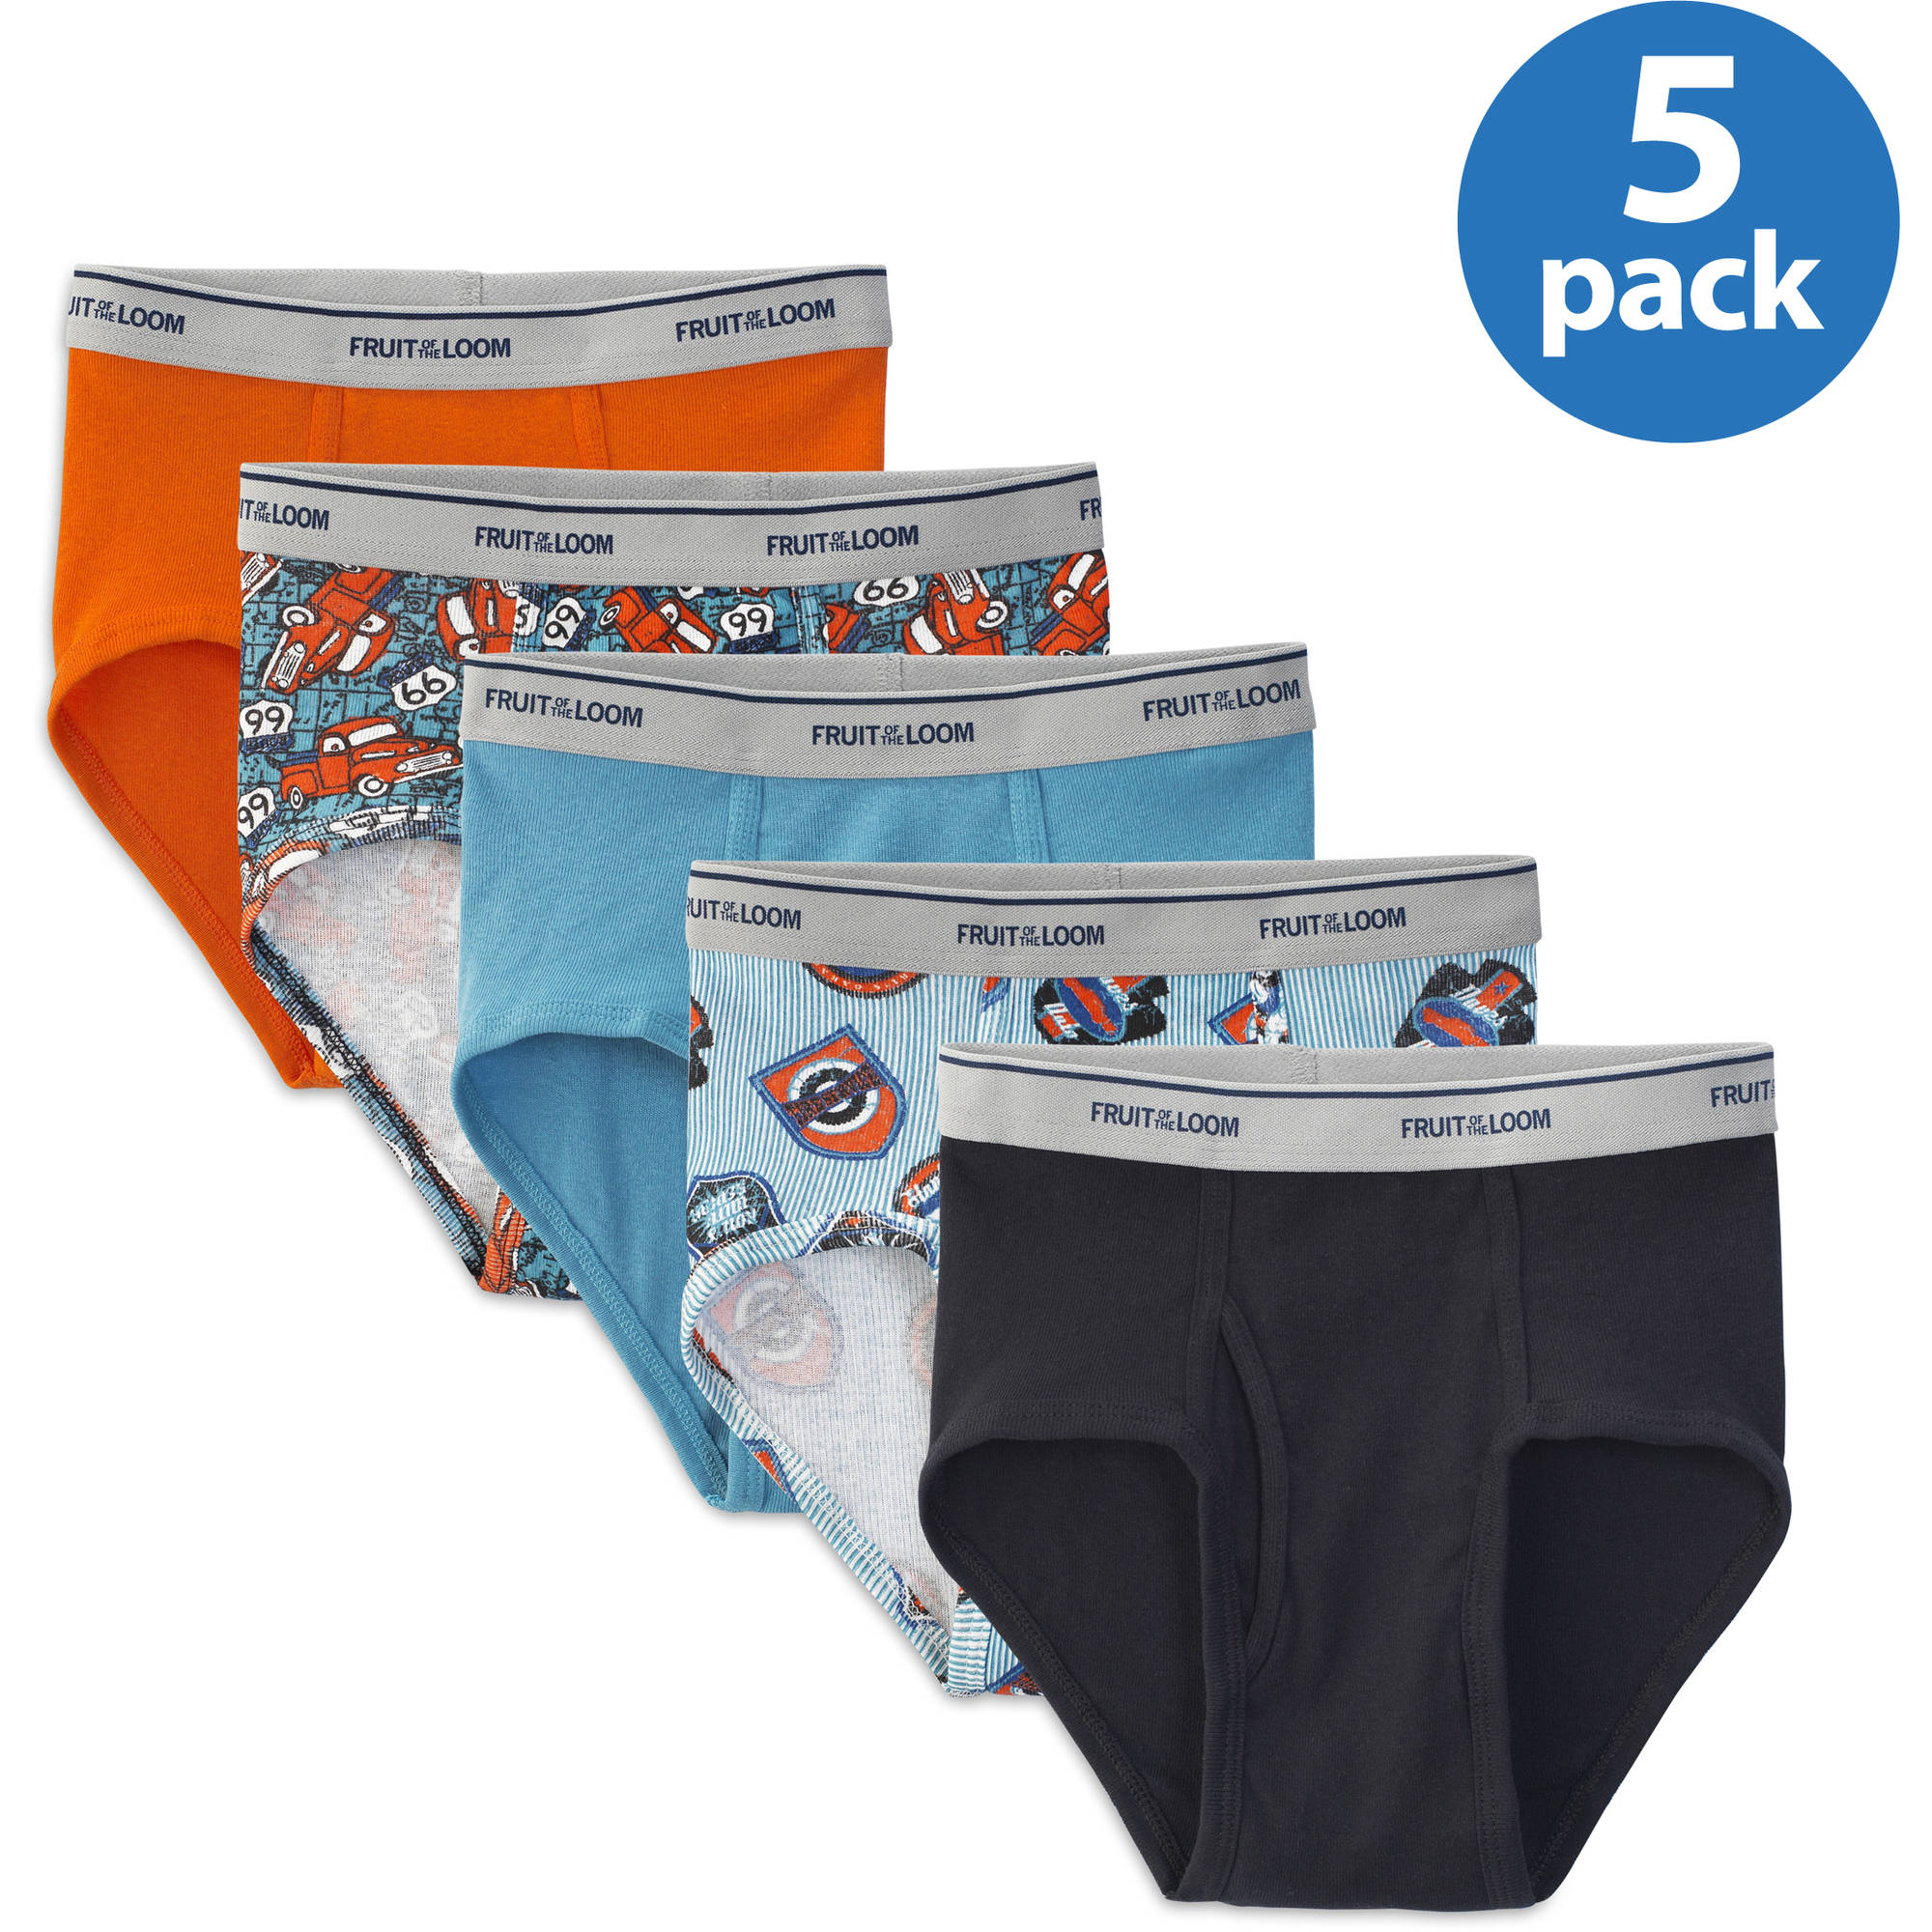 Fruit of the Loom - Boys' Fashion Briefs, 5-Pack